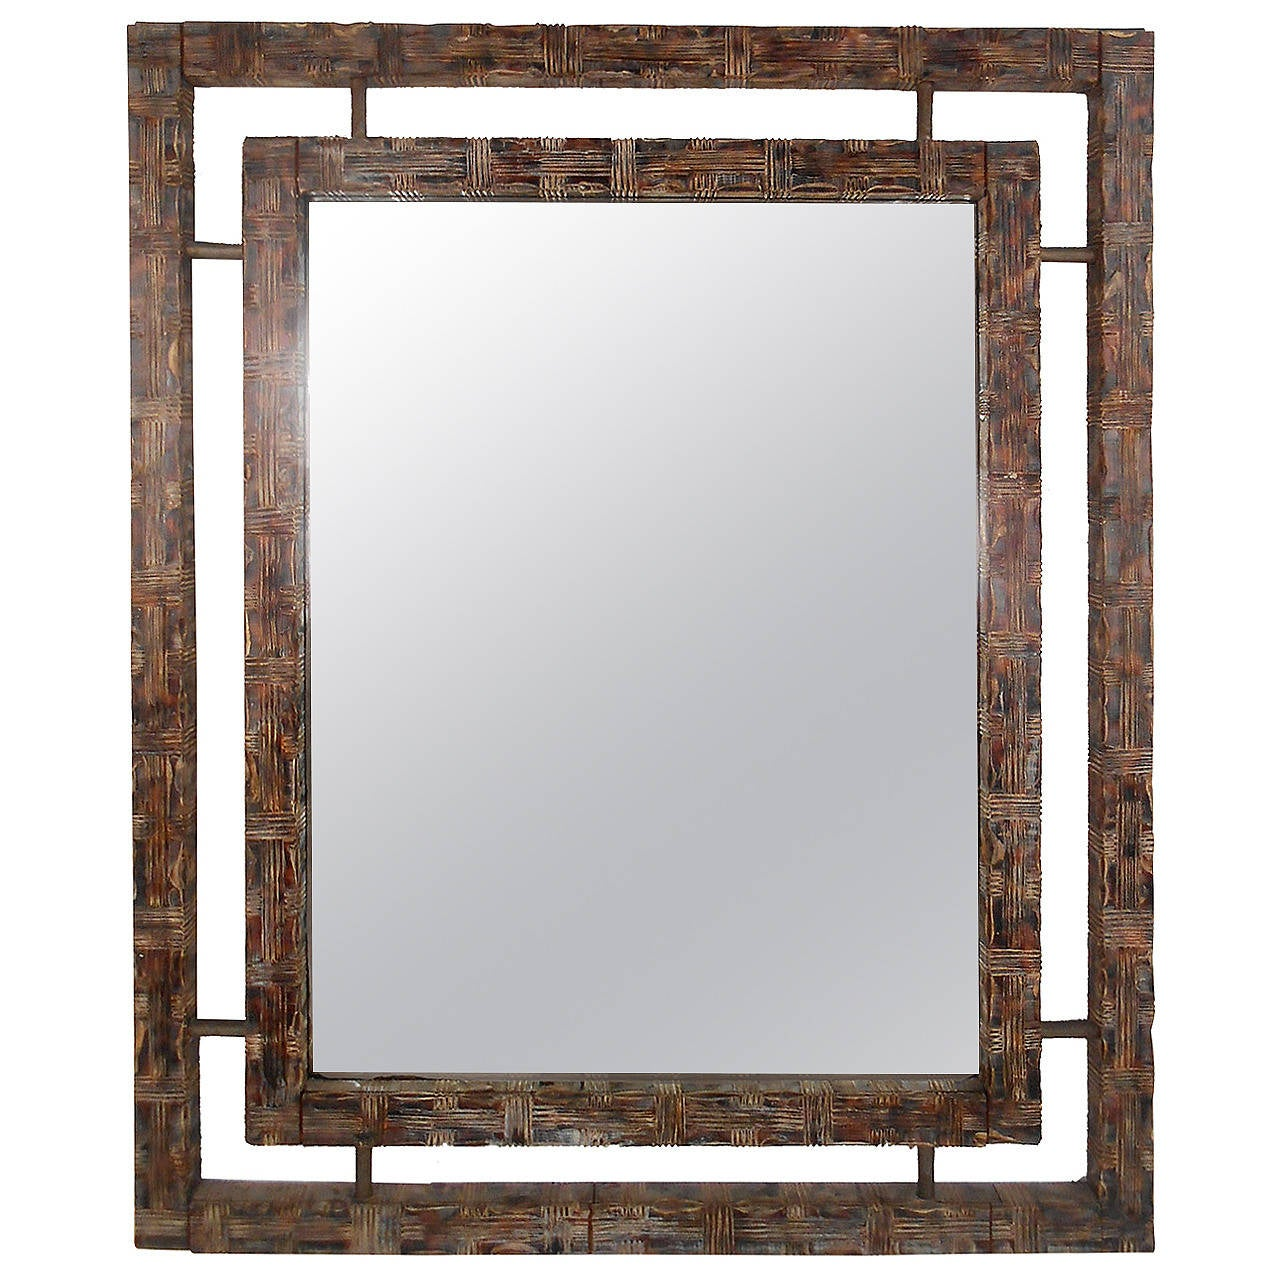 unique wall mirror w textured frame for sale at 1stdibs